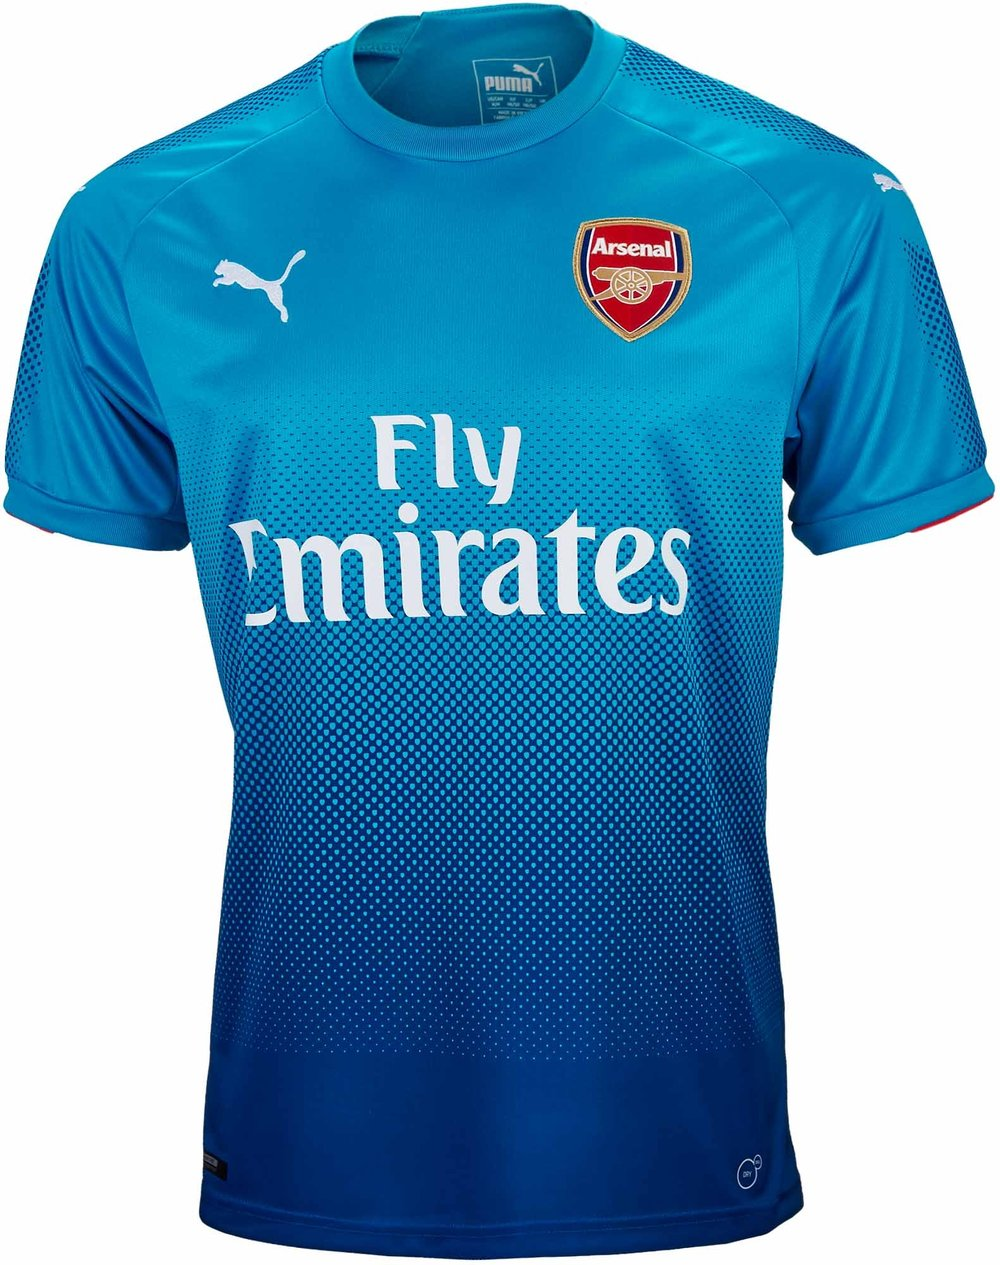 Puma Arsenal Away Jersey 17/18